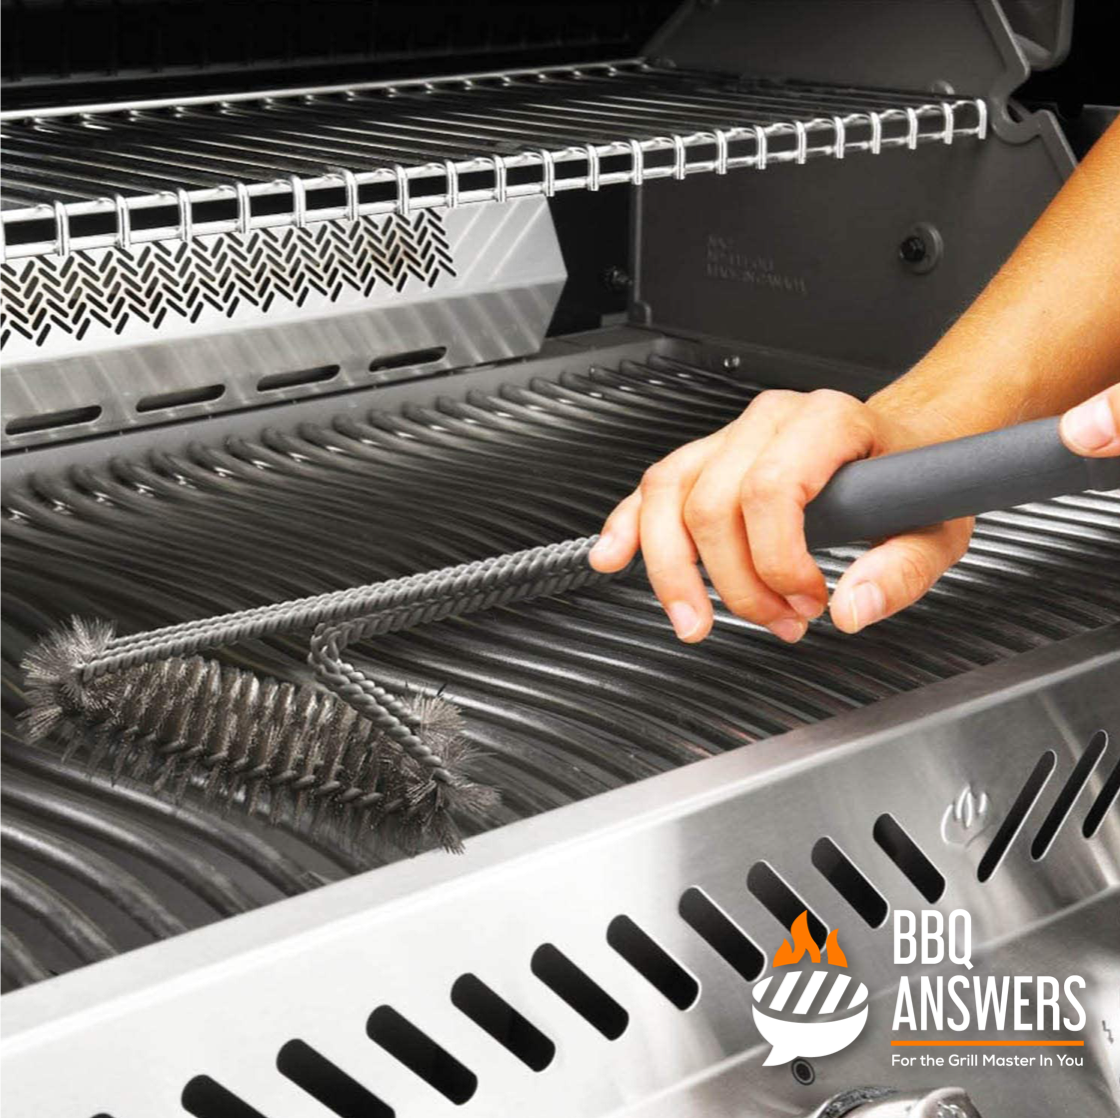 Cleaning Grill Grates | BBQanswers